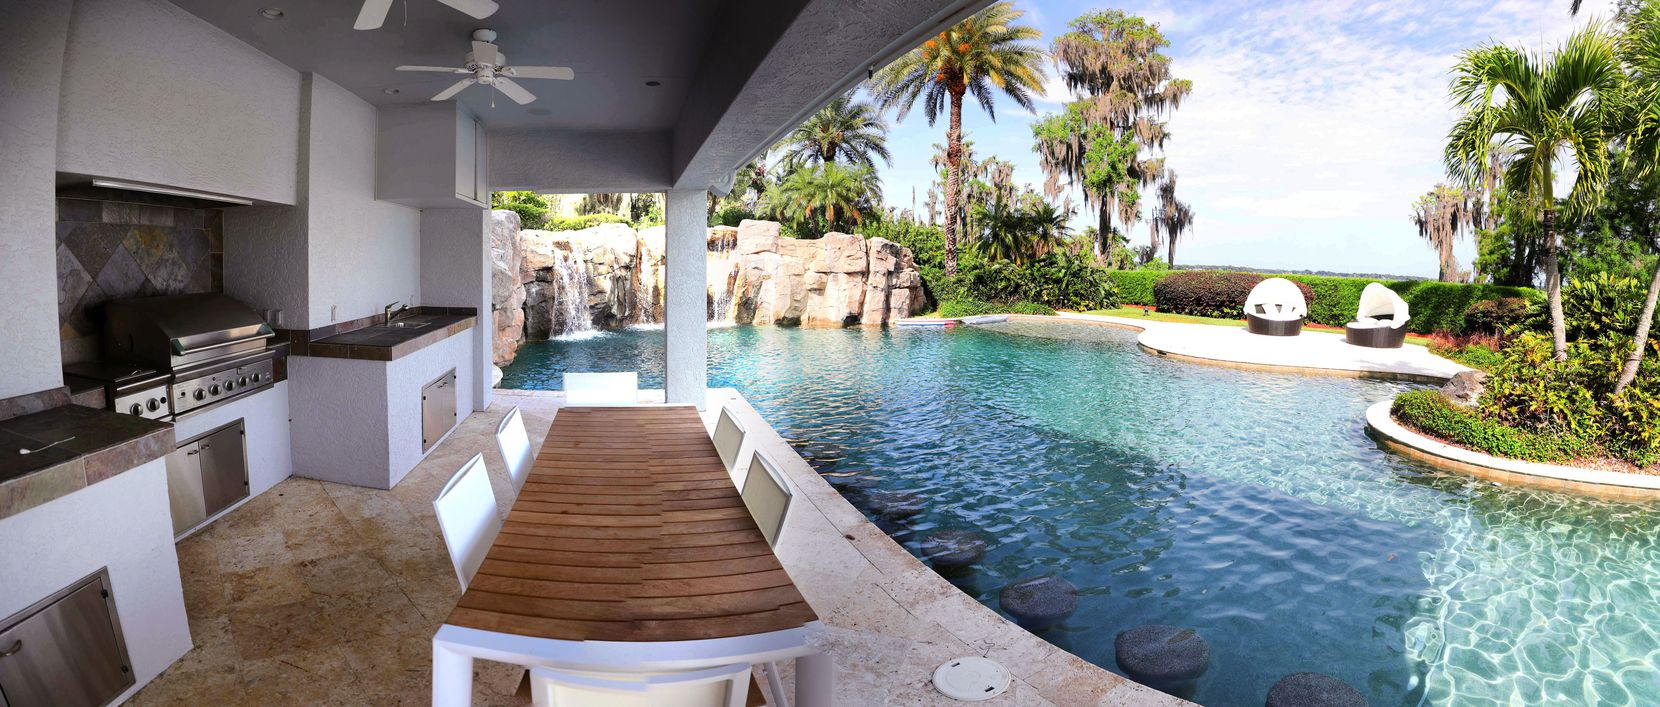 The 31,000 square-foot-home has a lagoon pool and outdoor kitchen.